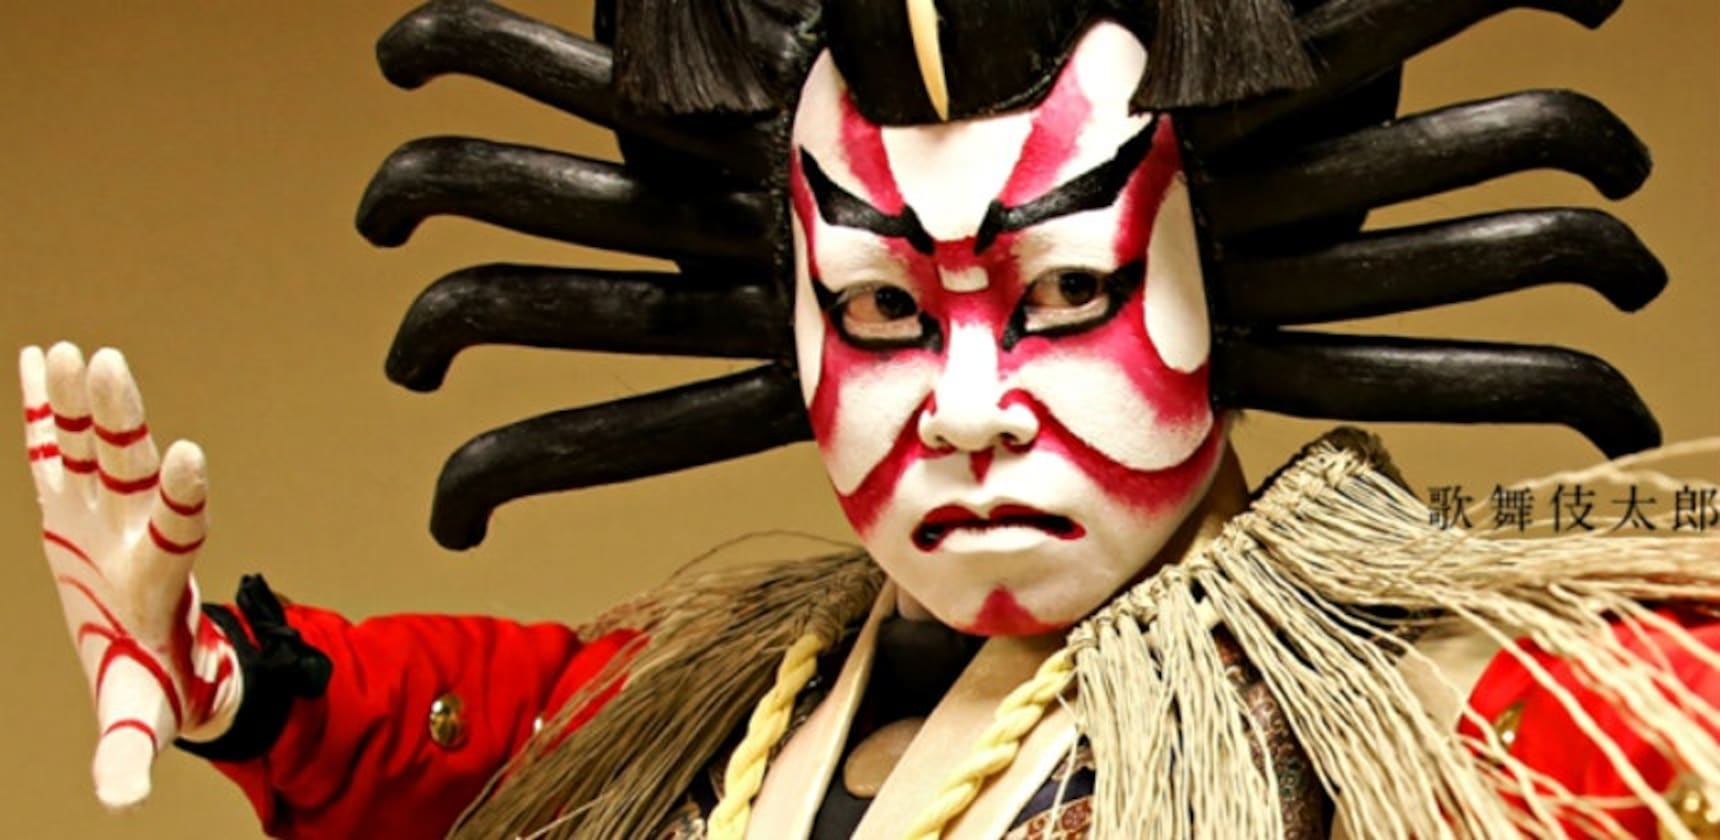 You Too Can Become a Kabuki Star!